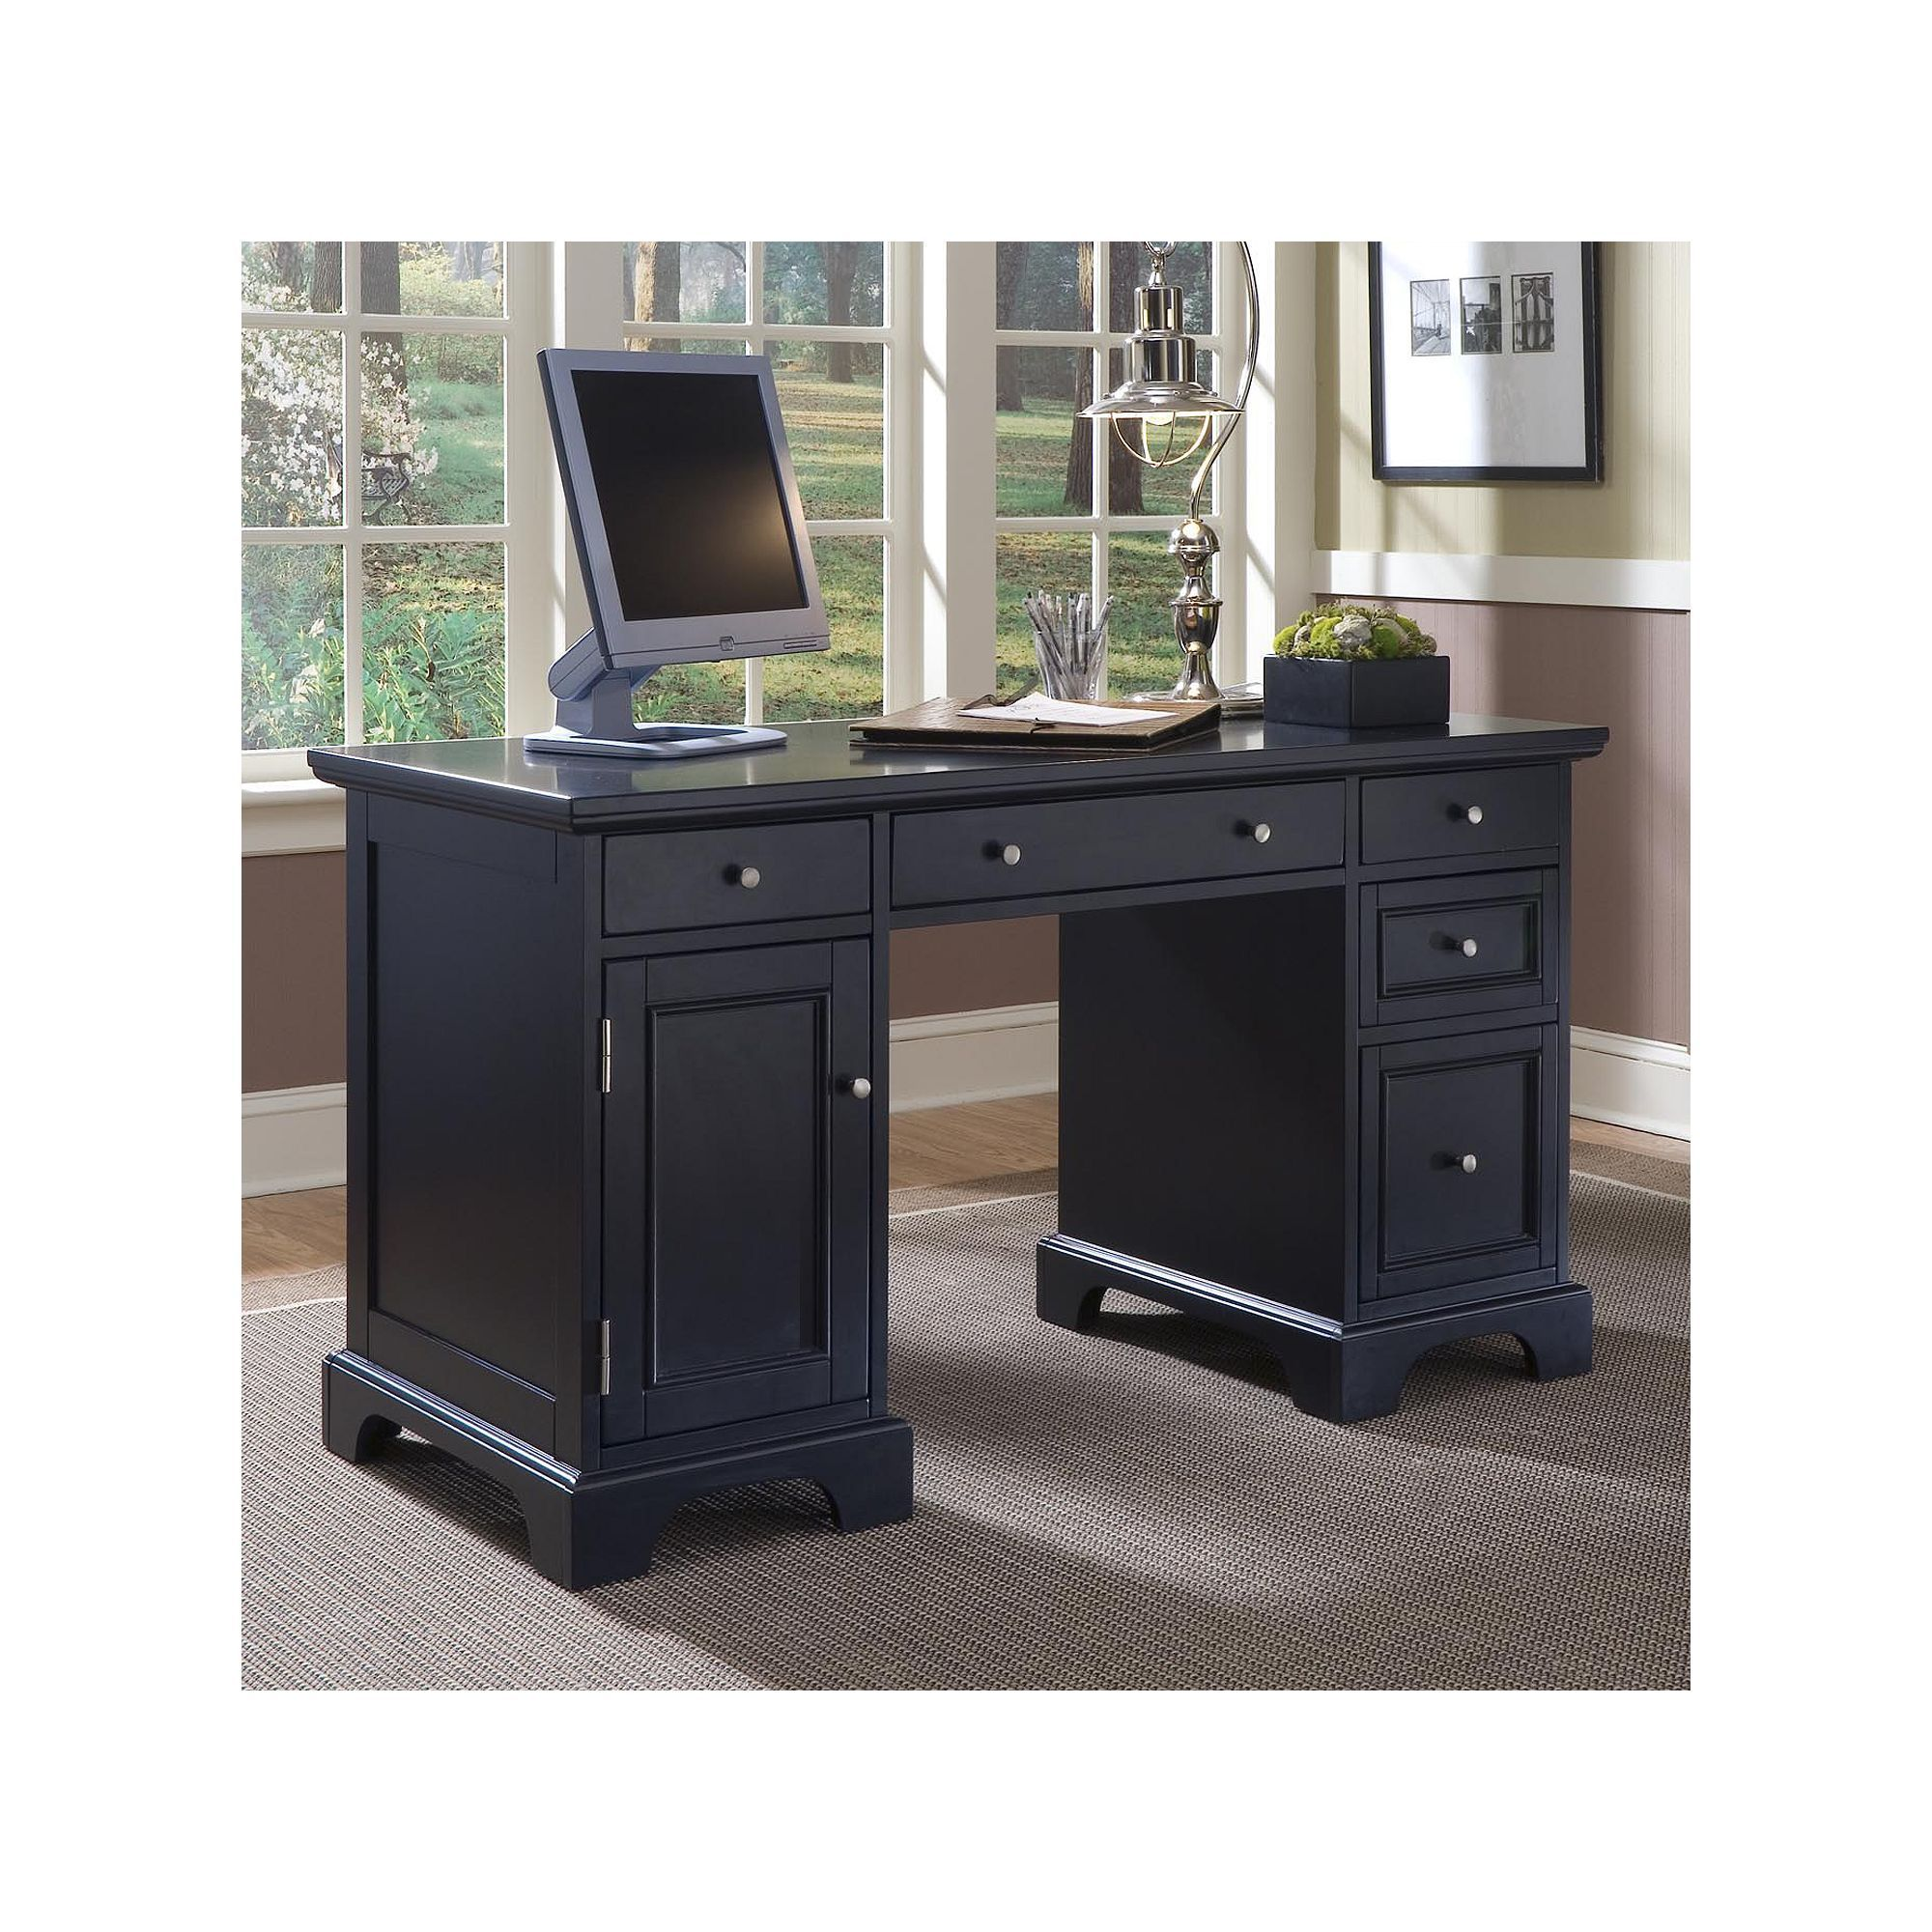 home styles bedford pedestal desk in 2019 products pinterest rh pinterest com